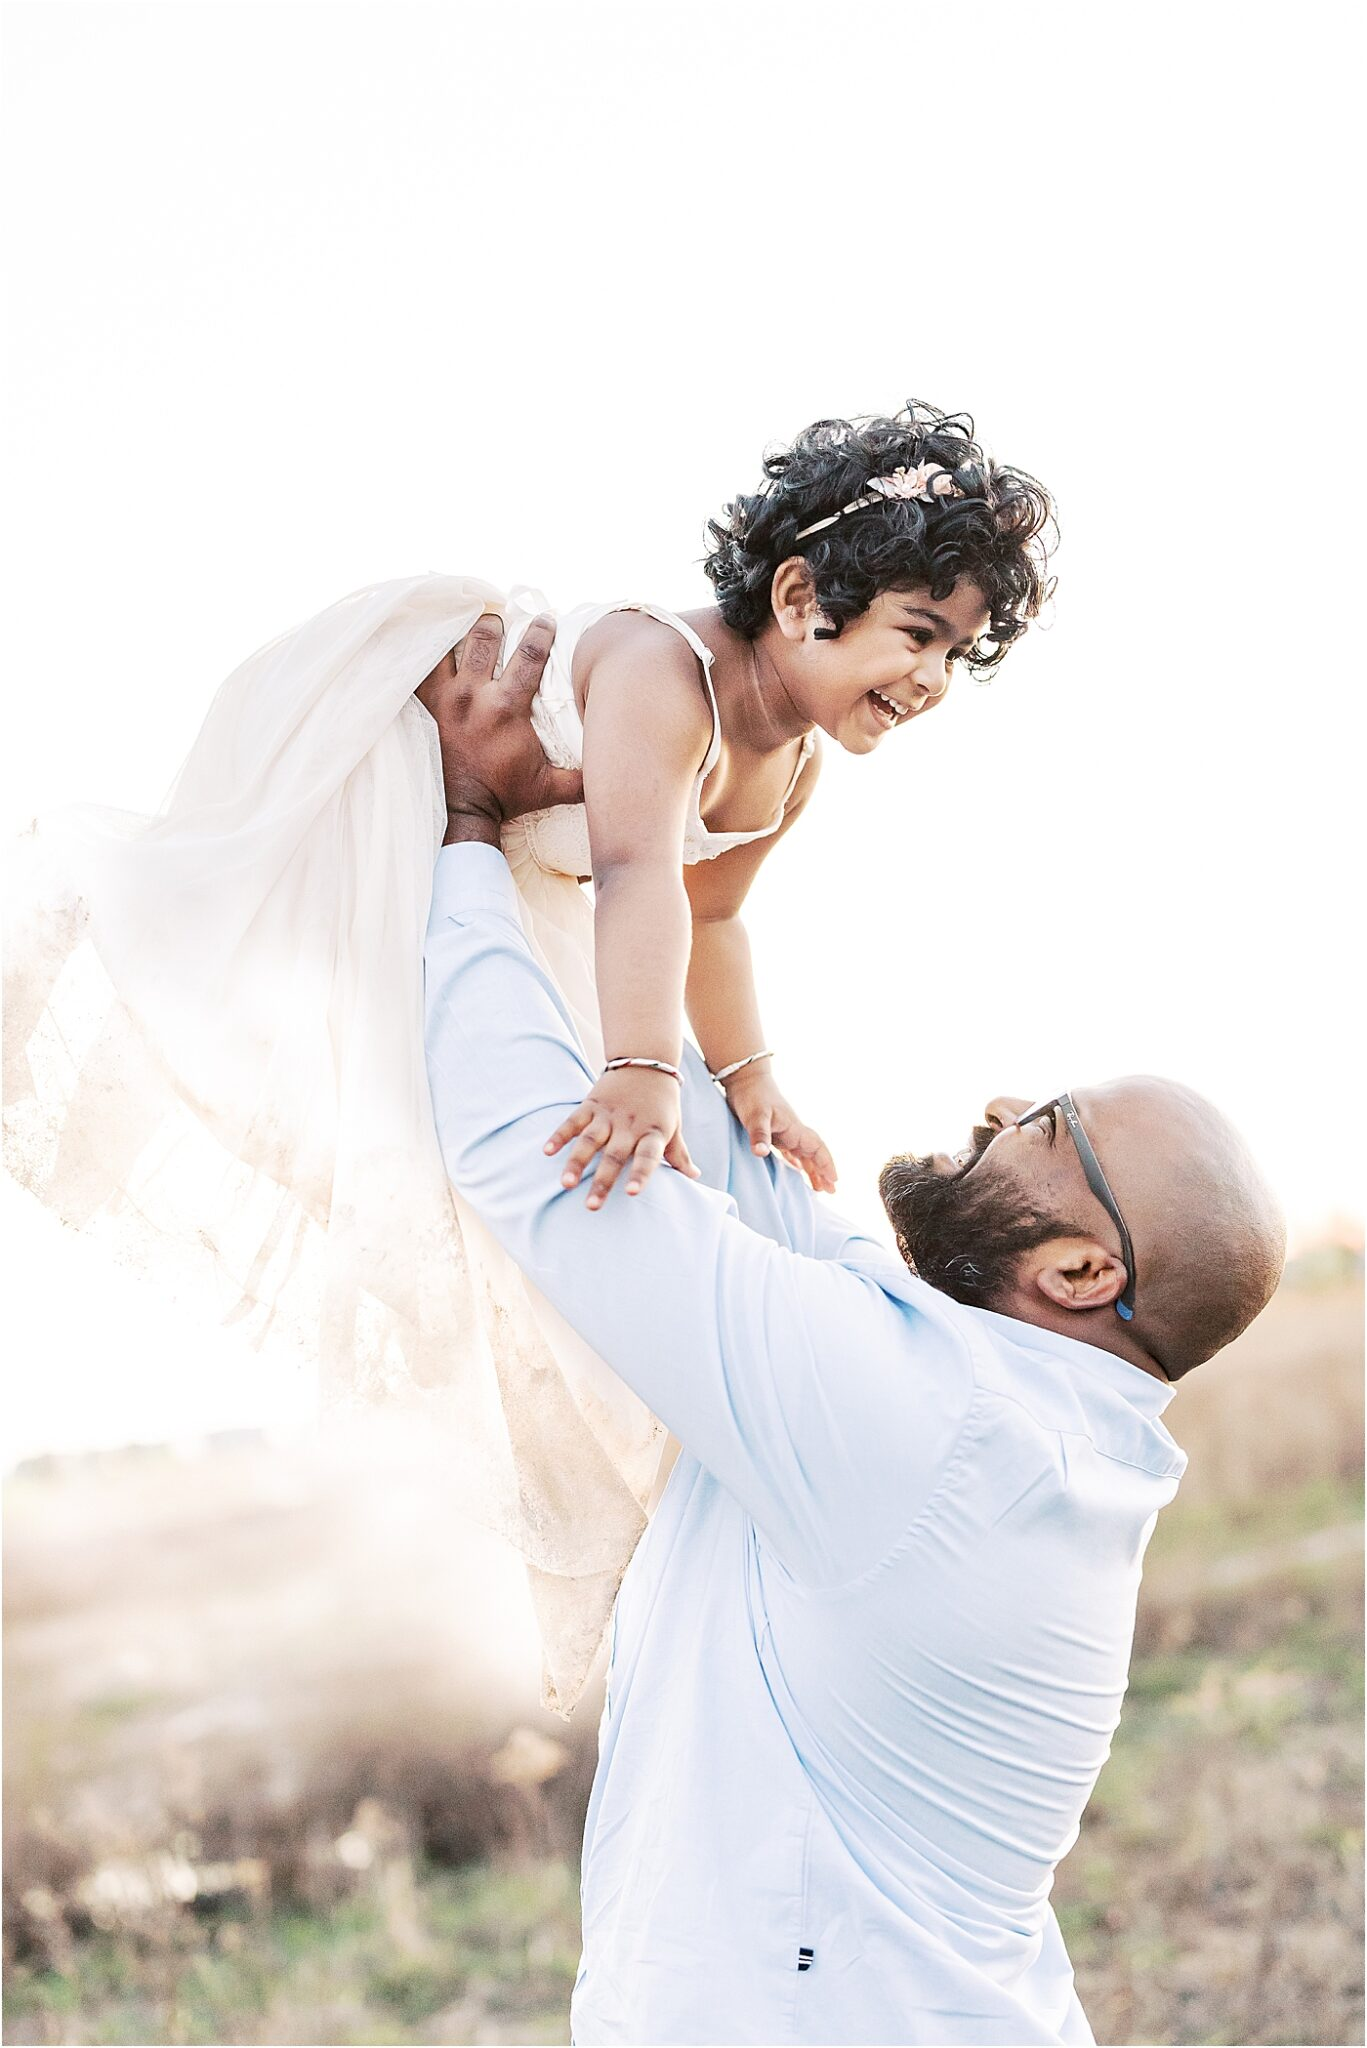 Daddy playing airplane with his daughter during family photoshoot. Photo by Lindsay Konopa Photography.